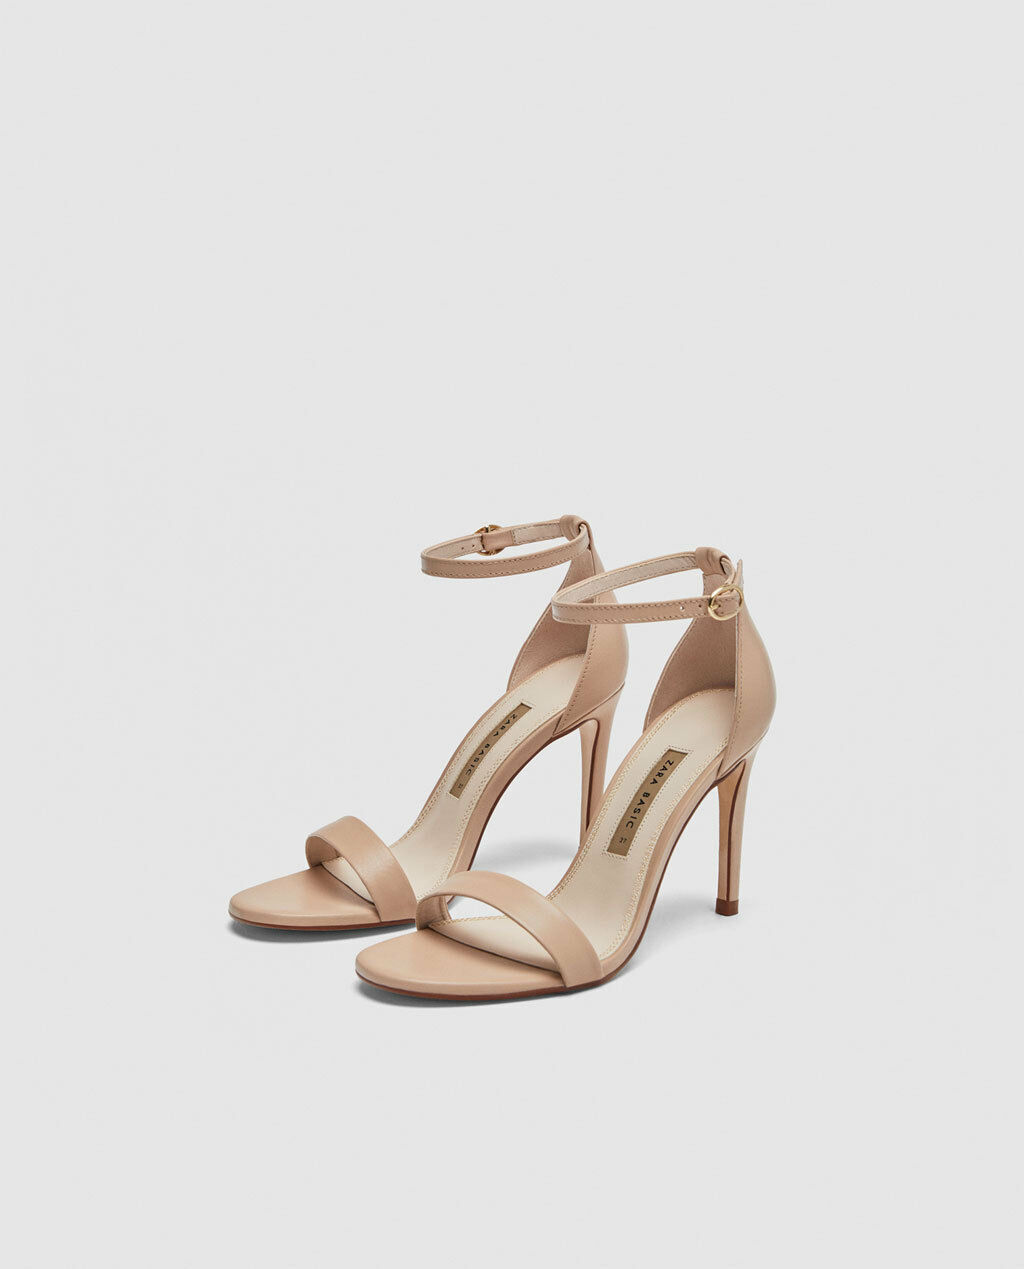 ZARA NEW SANDALS Damenschuhe LEATHER HIGH HEEL SANDALS NEW ECRU STILETTO Schuhe SIZE UK 5 EU 38 48917e